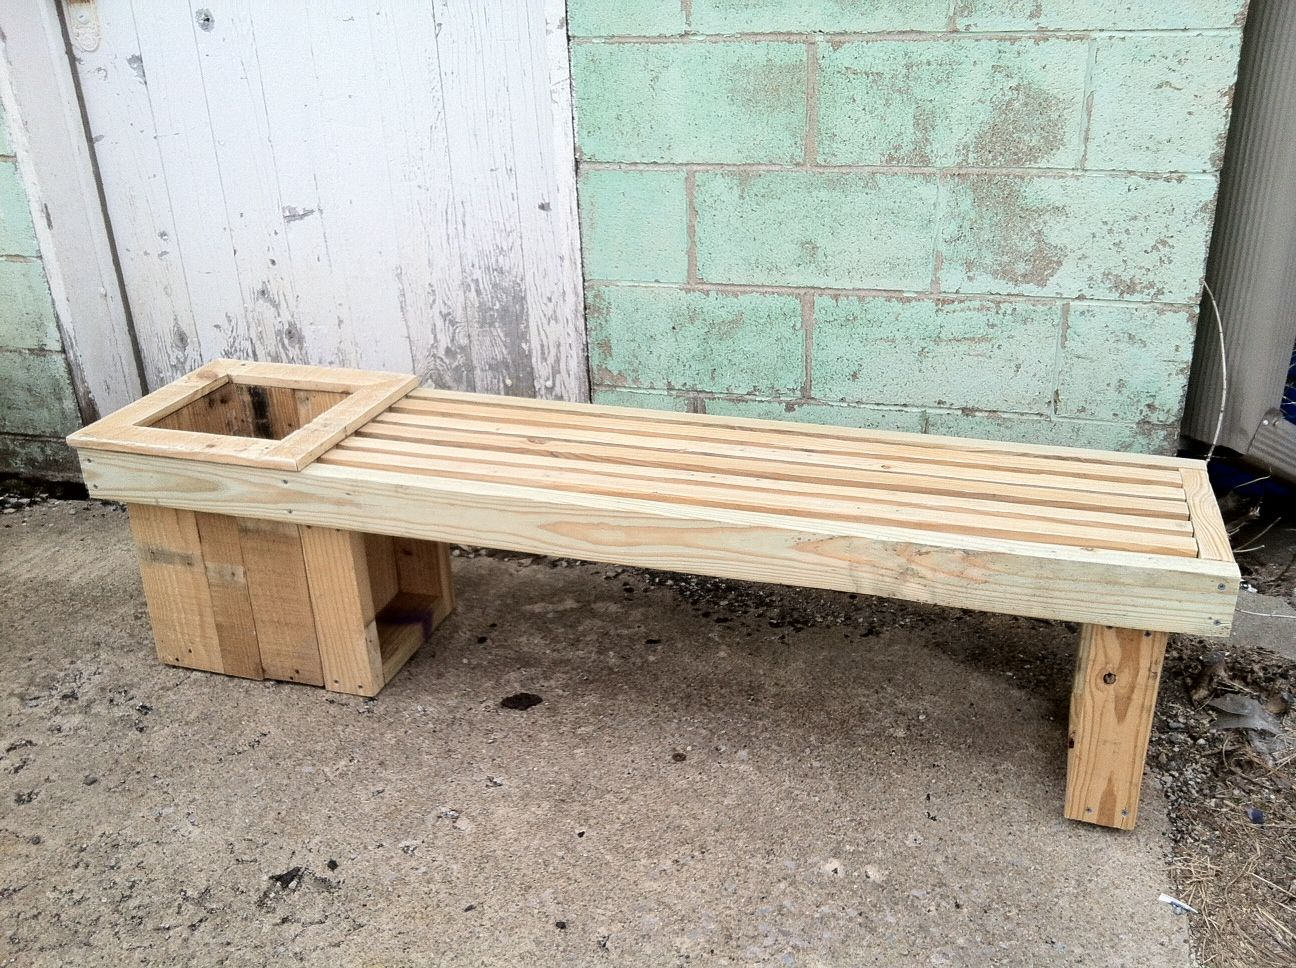 Pallet Bench And Flower Box Reclaimed Lumber Planter Box And Bench Projekte Aus Altholz Projekte Diy Holz